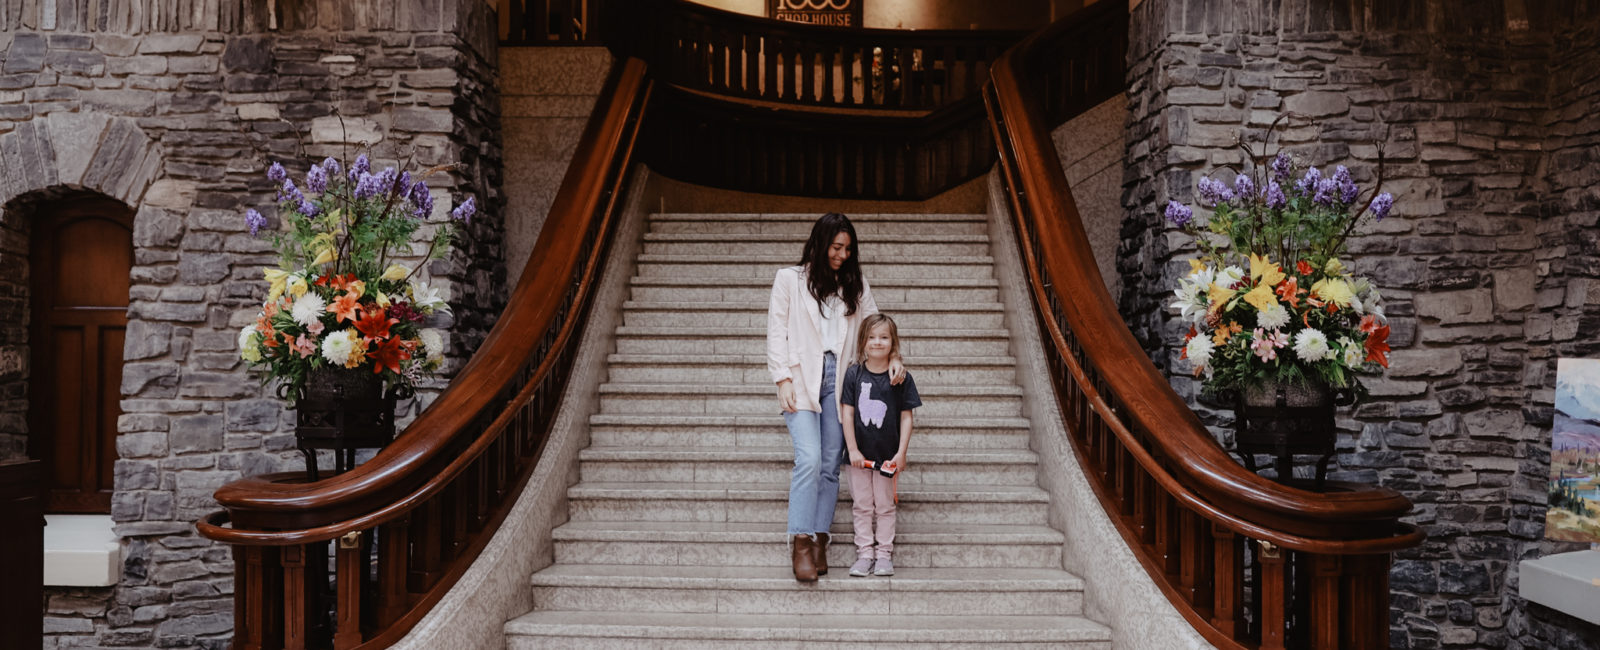 Fairmont Banff Springs Family Destination Home Away From Home